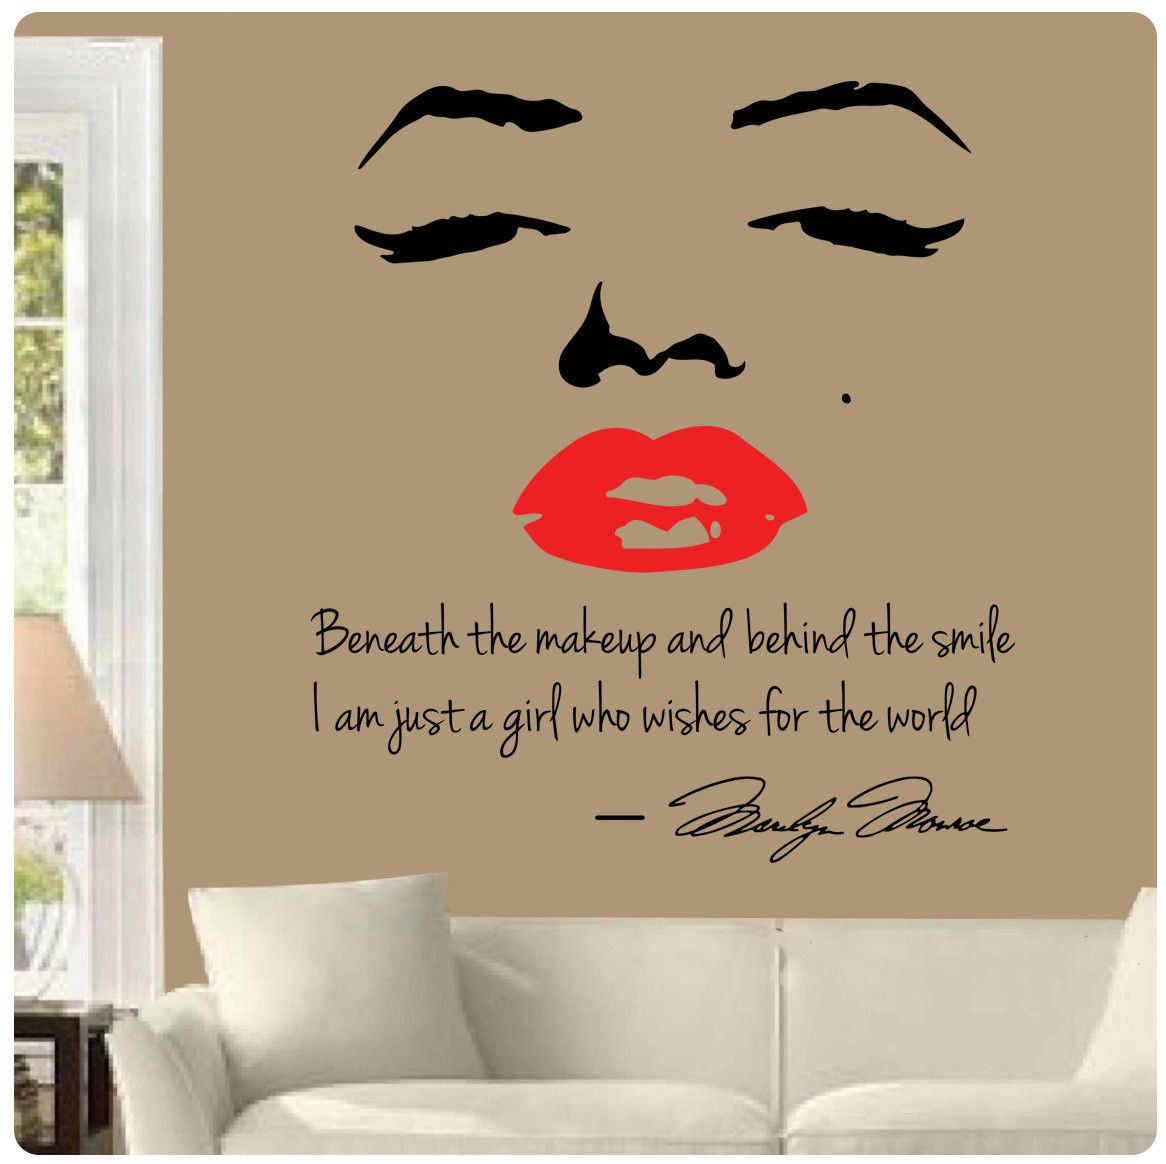 Marilyn Monroe Red Lips Wall Decal Beneath The Makeup Behind Smile